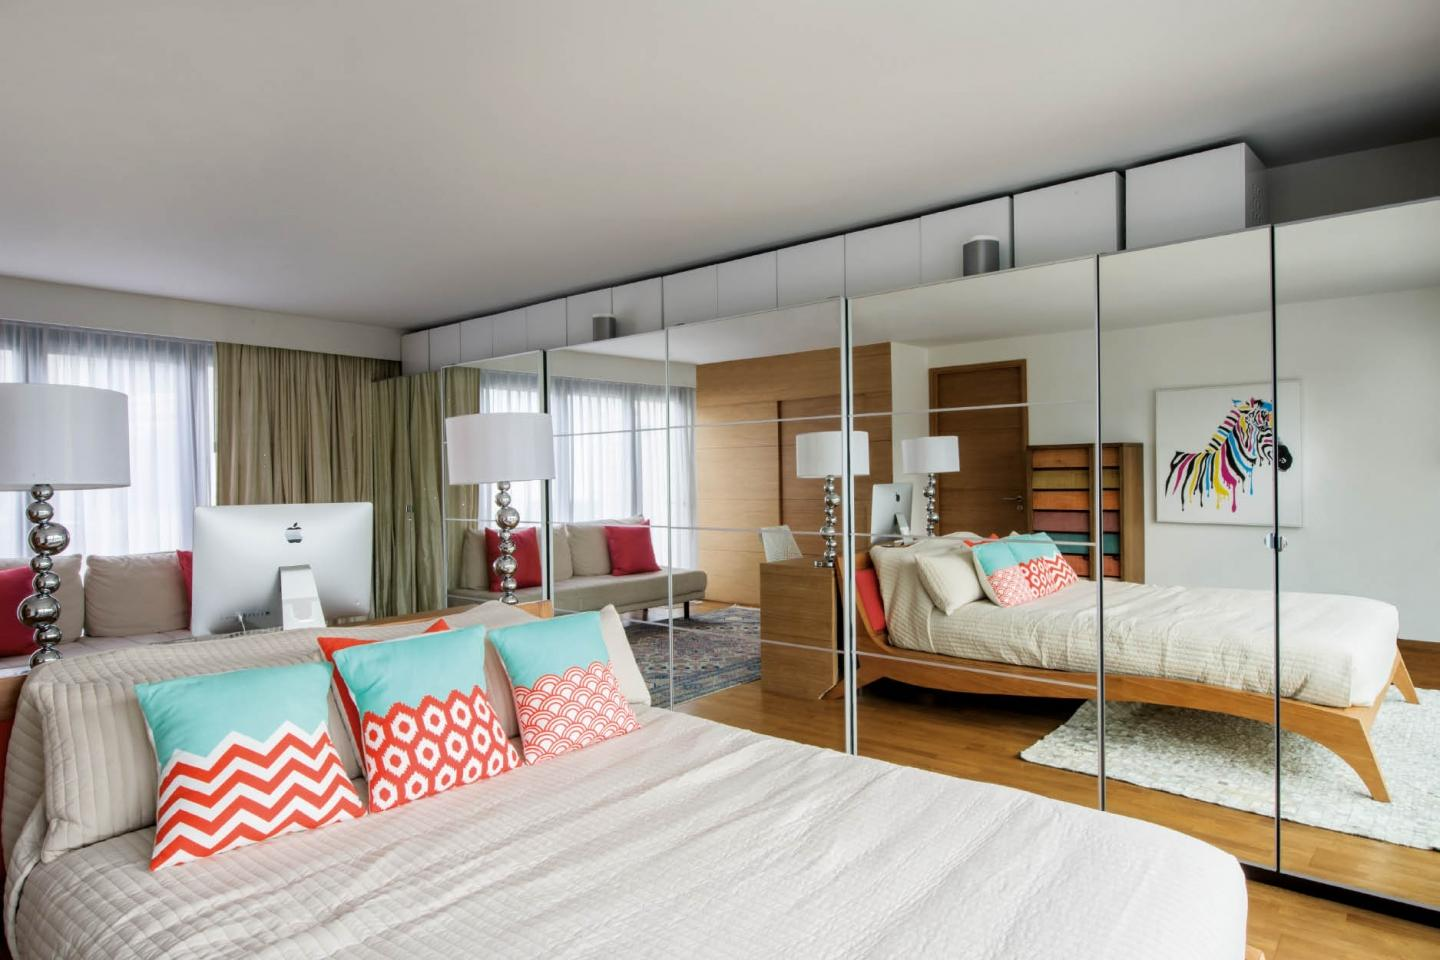 Mirrored storage gives the illusion of extra space and adds light to the guest bedroom